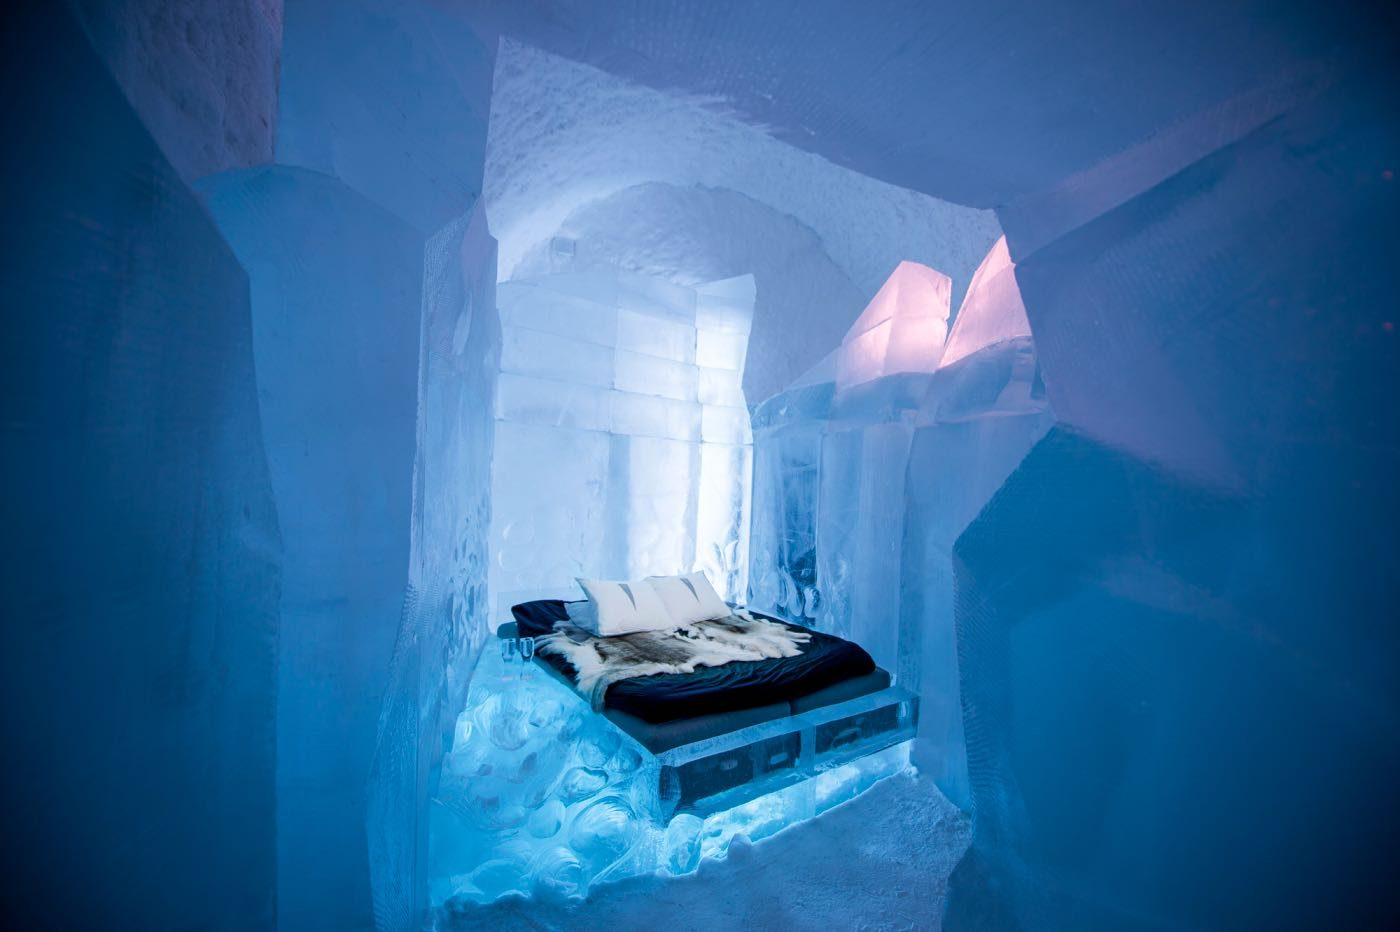 Dare to stay at Icehotel?: The Icehotel in Lapland is carved from 1,600 tonnes of snow and ice, and the hotel consists of 16 artist-designed suites, a bar and theatre. From beds to sofas, the hotel is an ice explosion and the cost of one room can start from $217 per night. Lapland lights up during Finland's Independence Day and tourists, wrapped in reindeer fur, chase Northern Lights, opt for yoga on the ice, and gorge on reindeer, cloudberries, beef and fish. (Image: Icehotel)